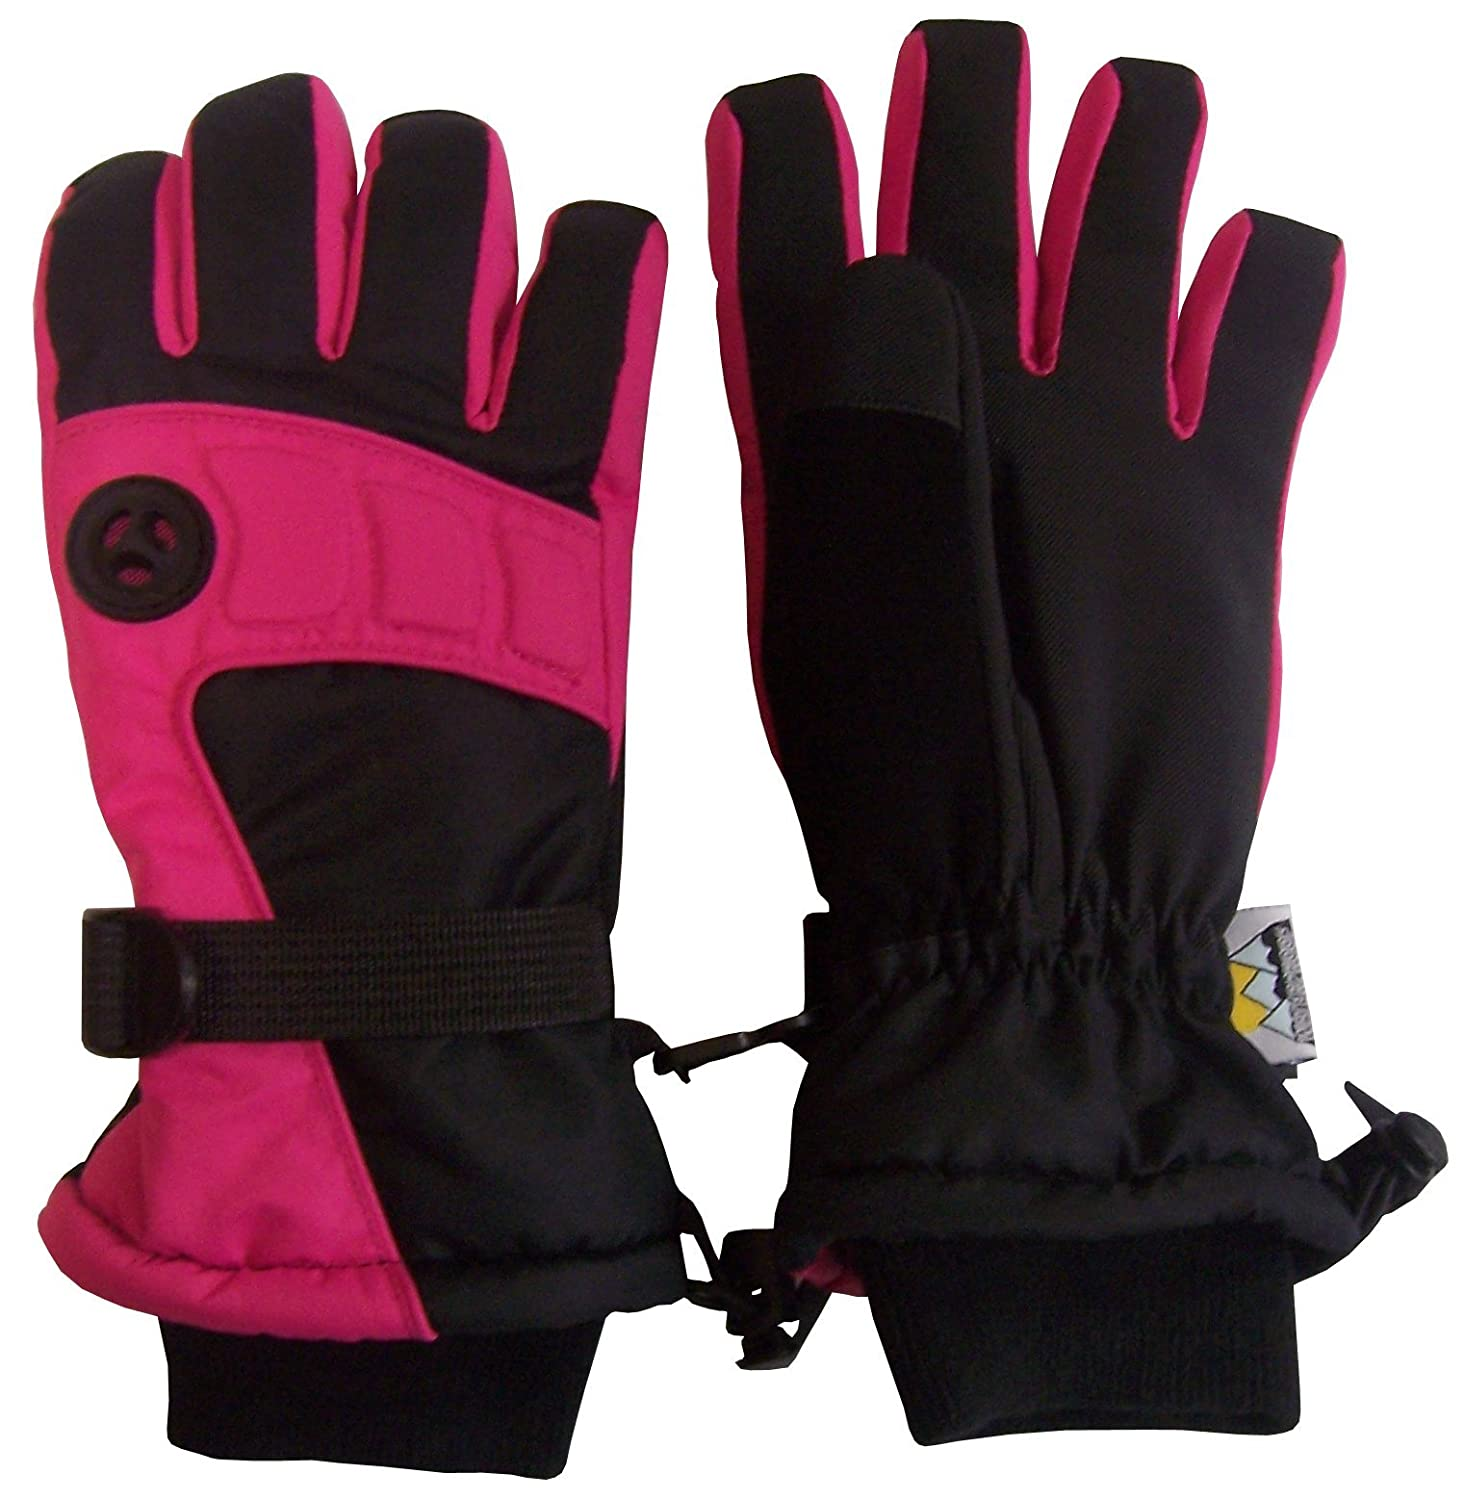 N'Ice Caps Kids Extreme Cold Weather Premier Colorblock Ski Glove with Air Hole 4929-FPI-1012